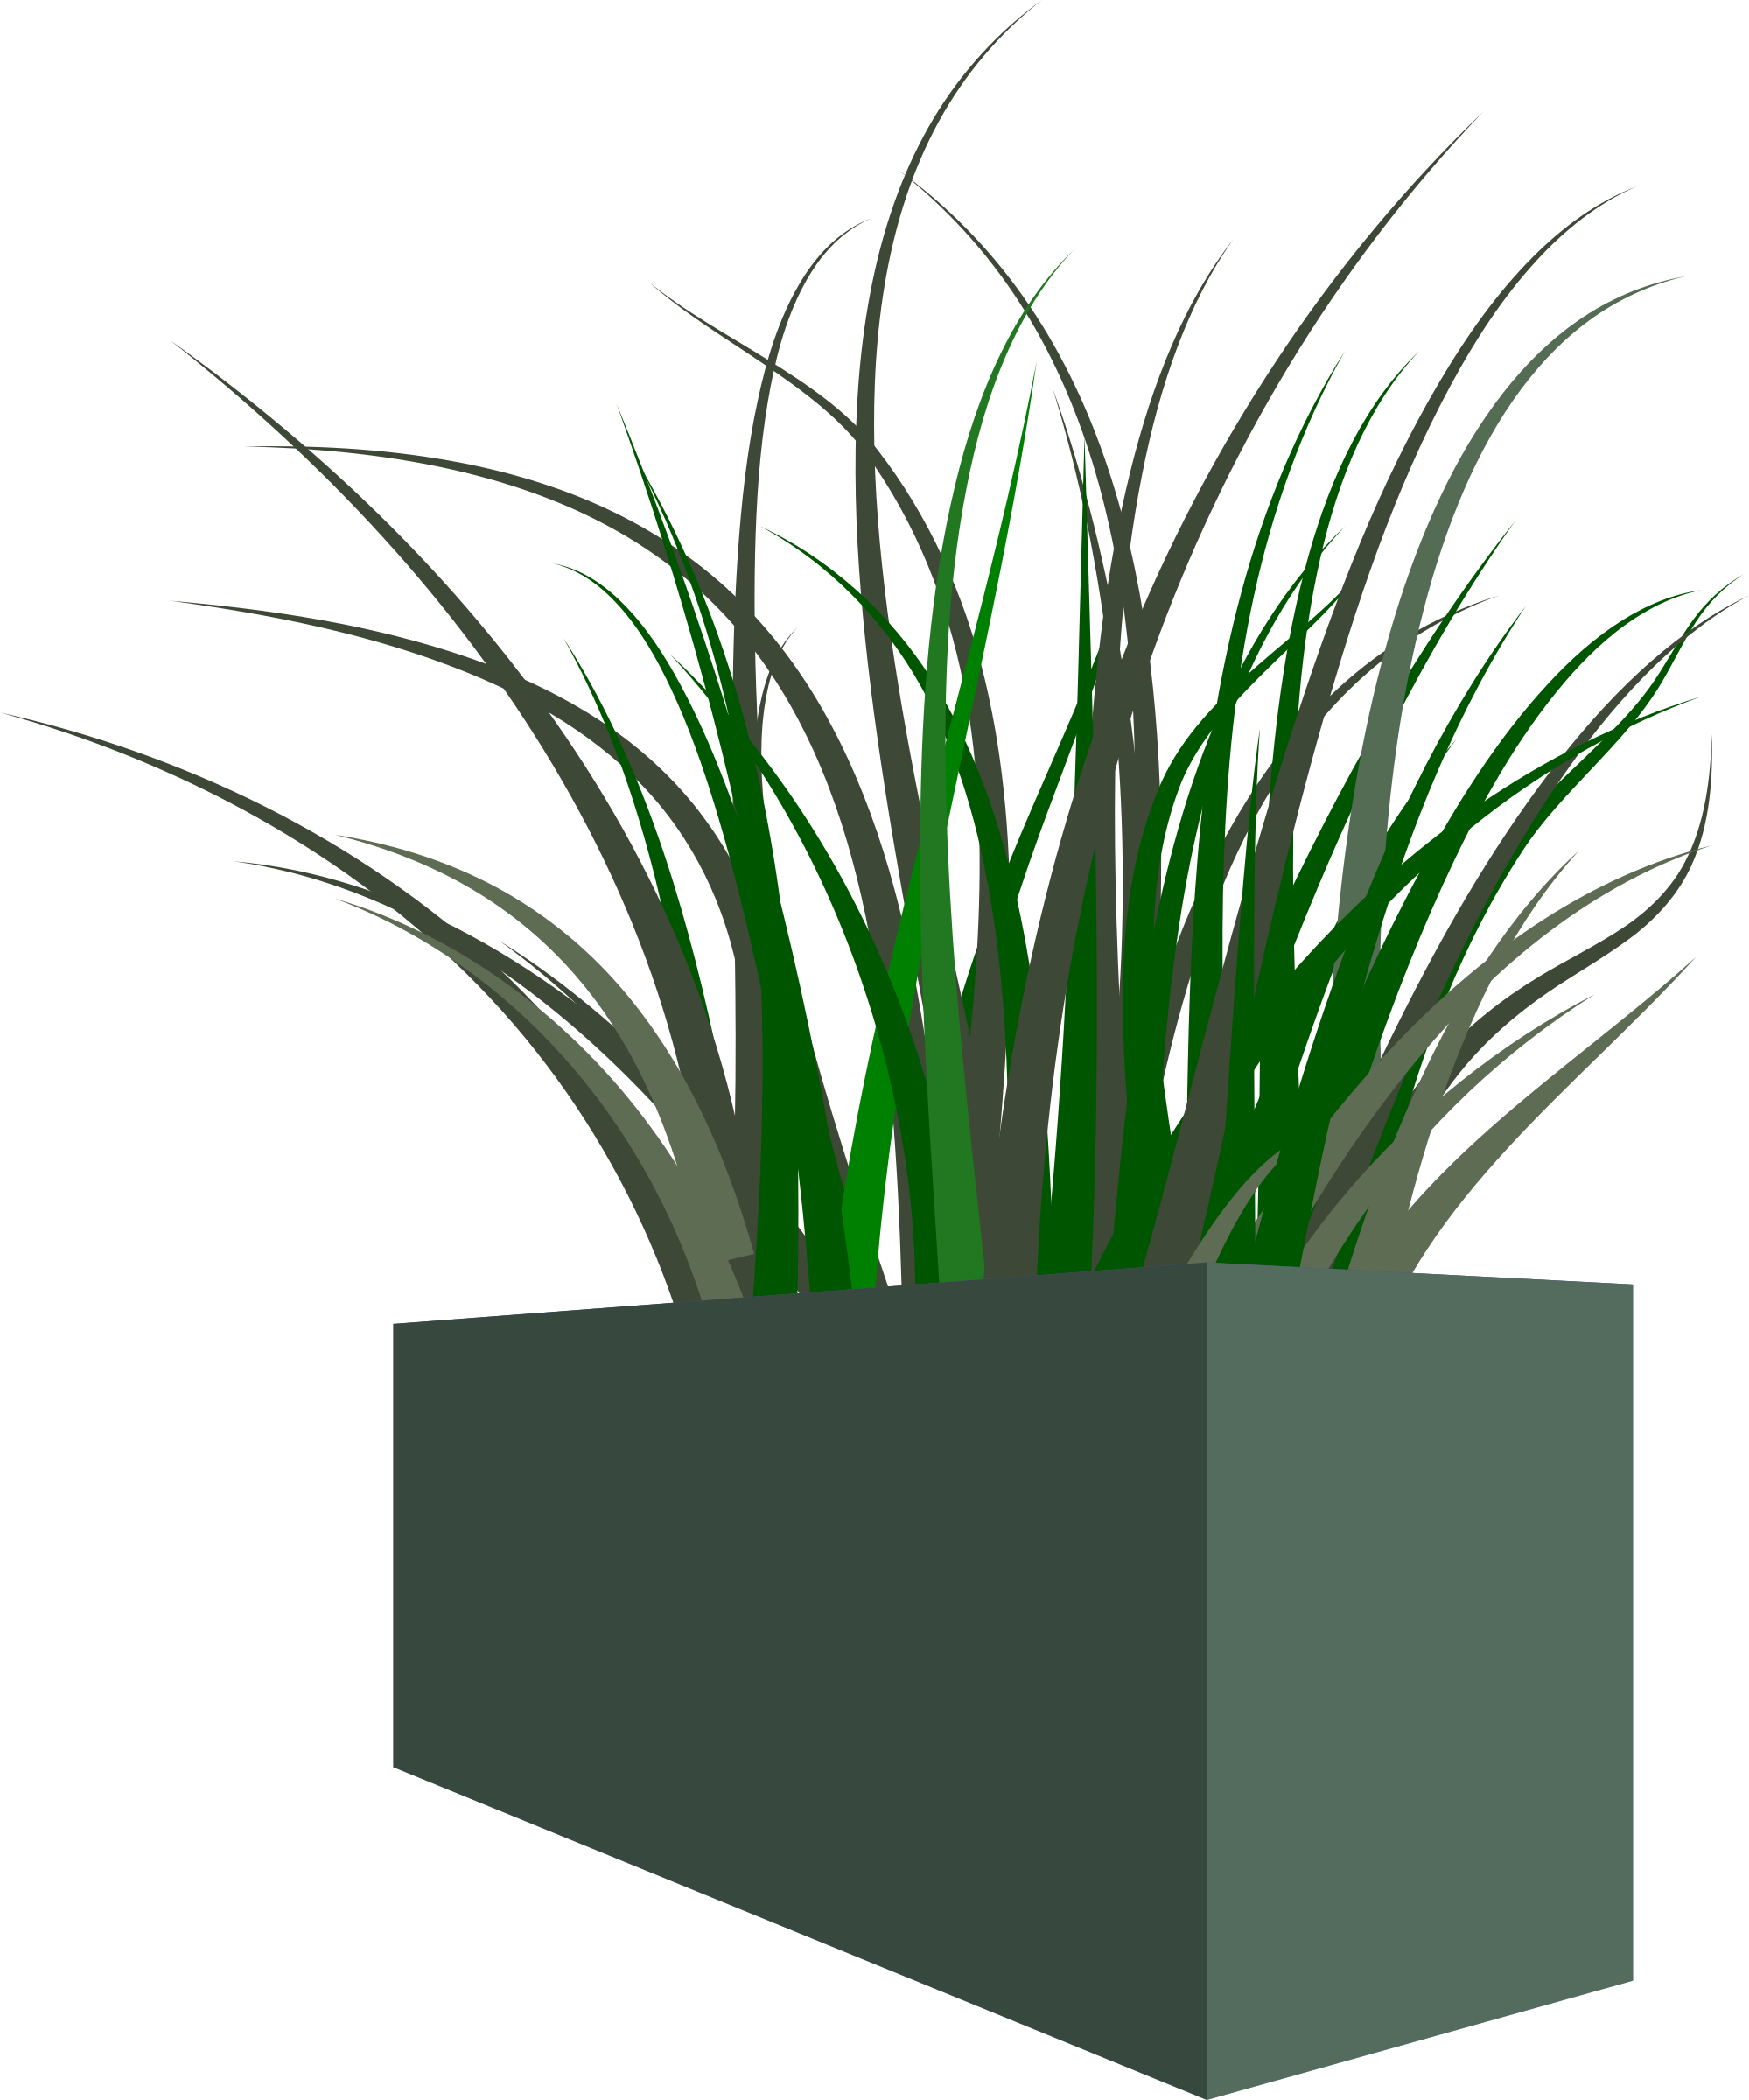 Grass in square big. Flower clipart planter